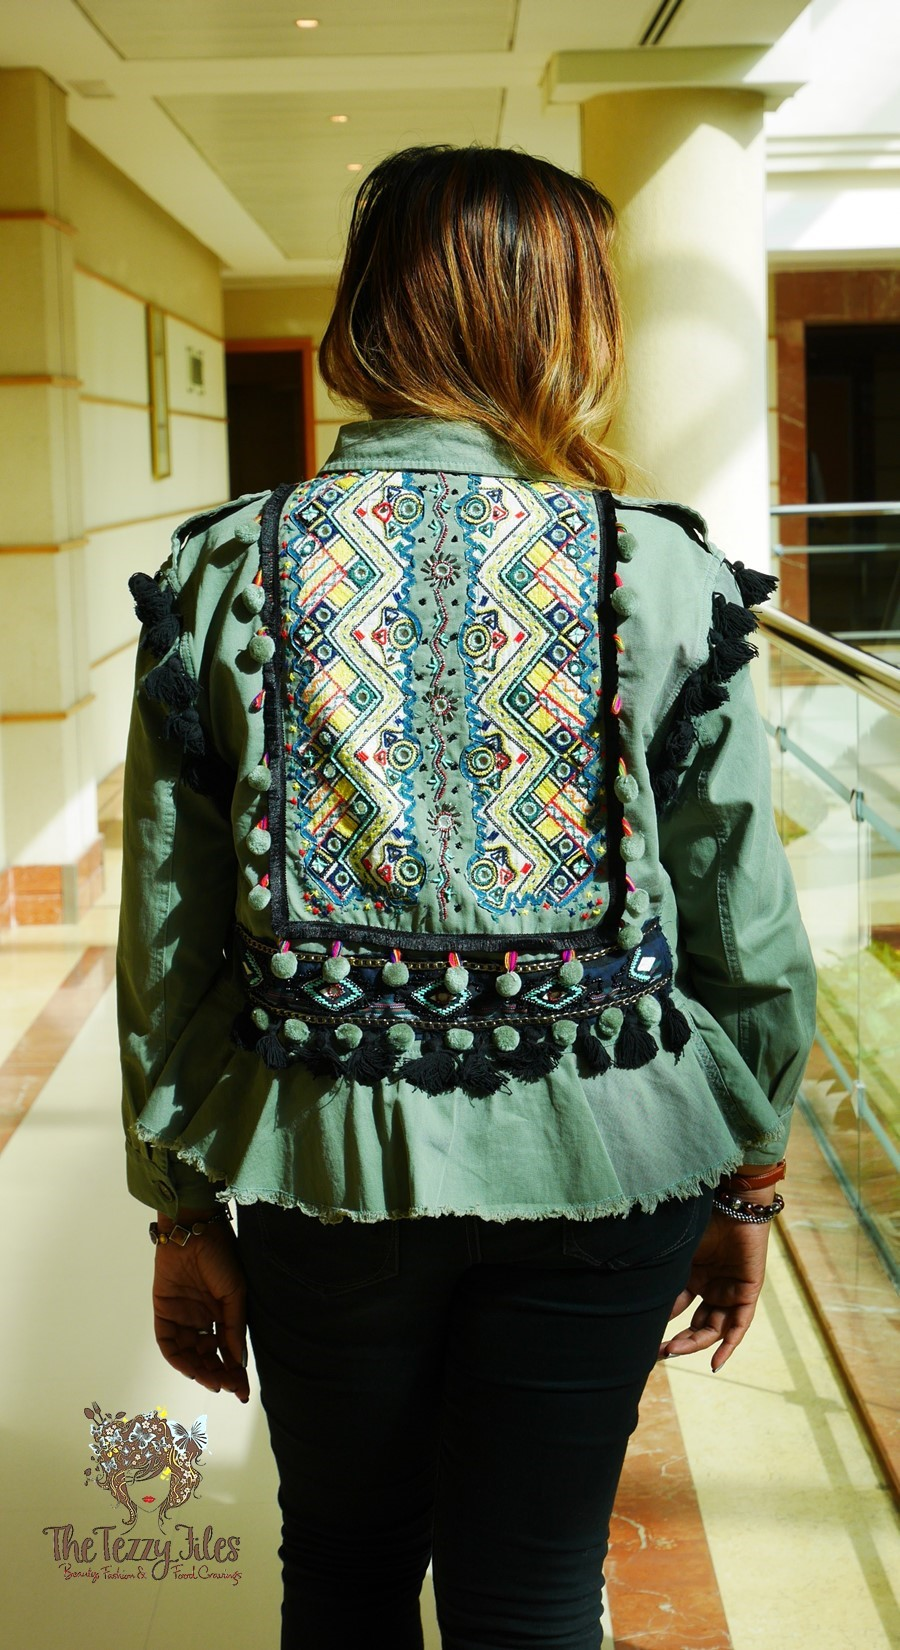 Zara Ethnic Tribal Khaki Jacket Dubai Fashion Blog The Tezzy Files Blogger UAE Indian Embroidery Mirror Work Jacket Casual pompoms